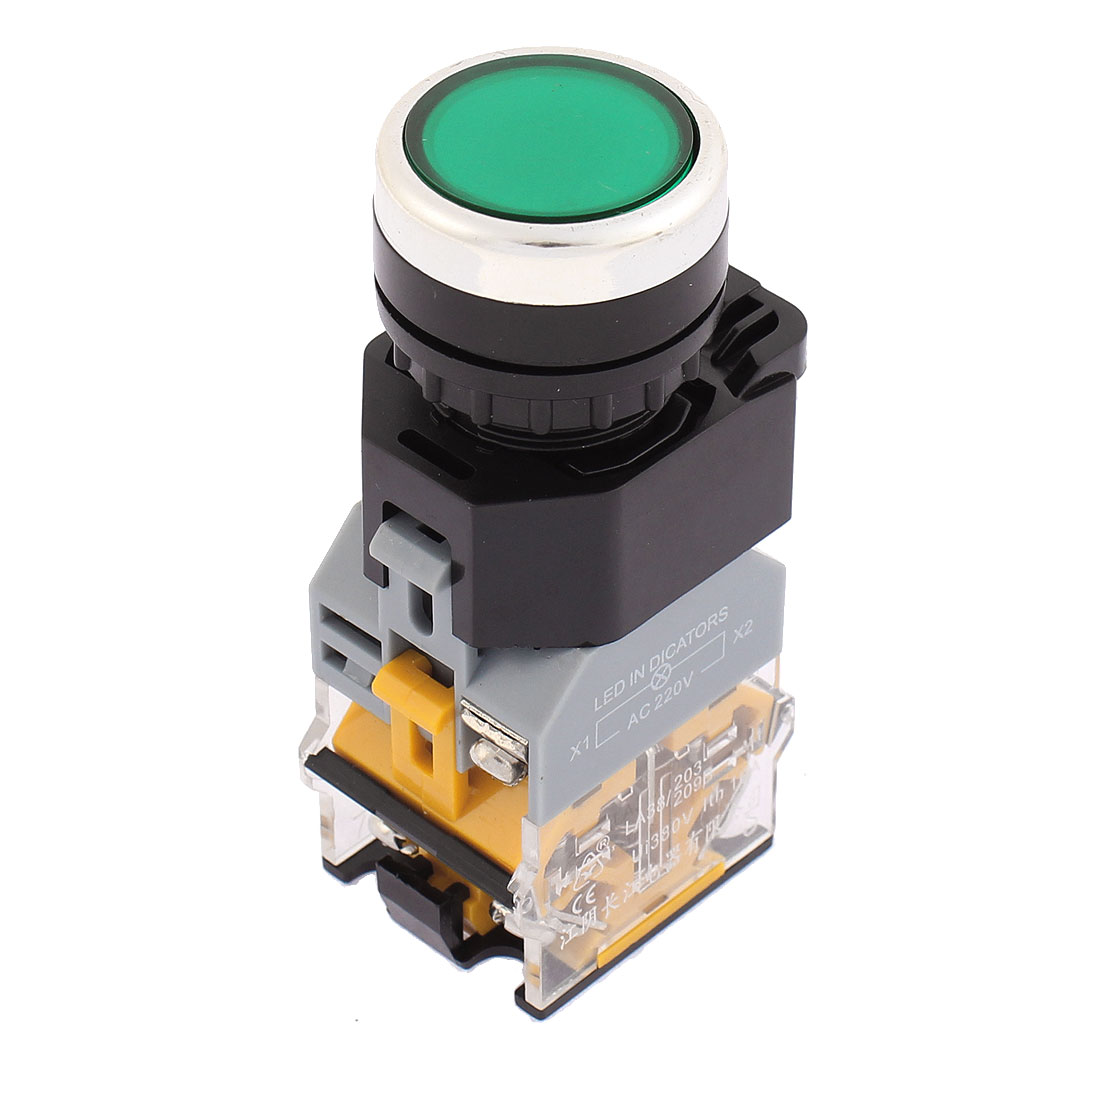 AC 220V Green LED Indicator 22mm Thread Panel Mounted 1NO 1NC DPST Latching Push Button Switch